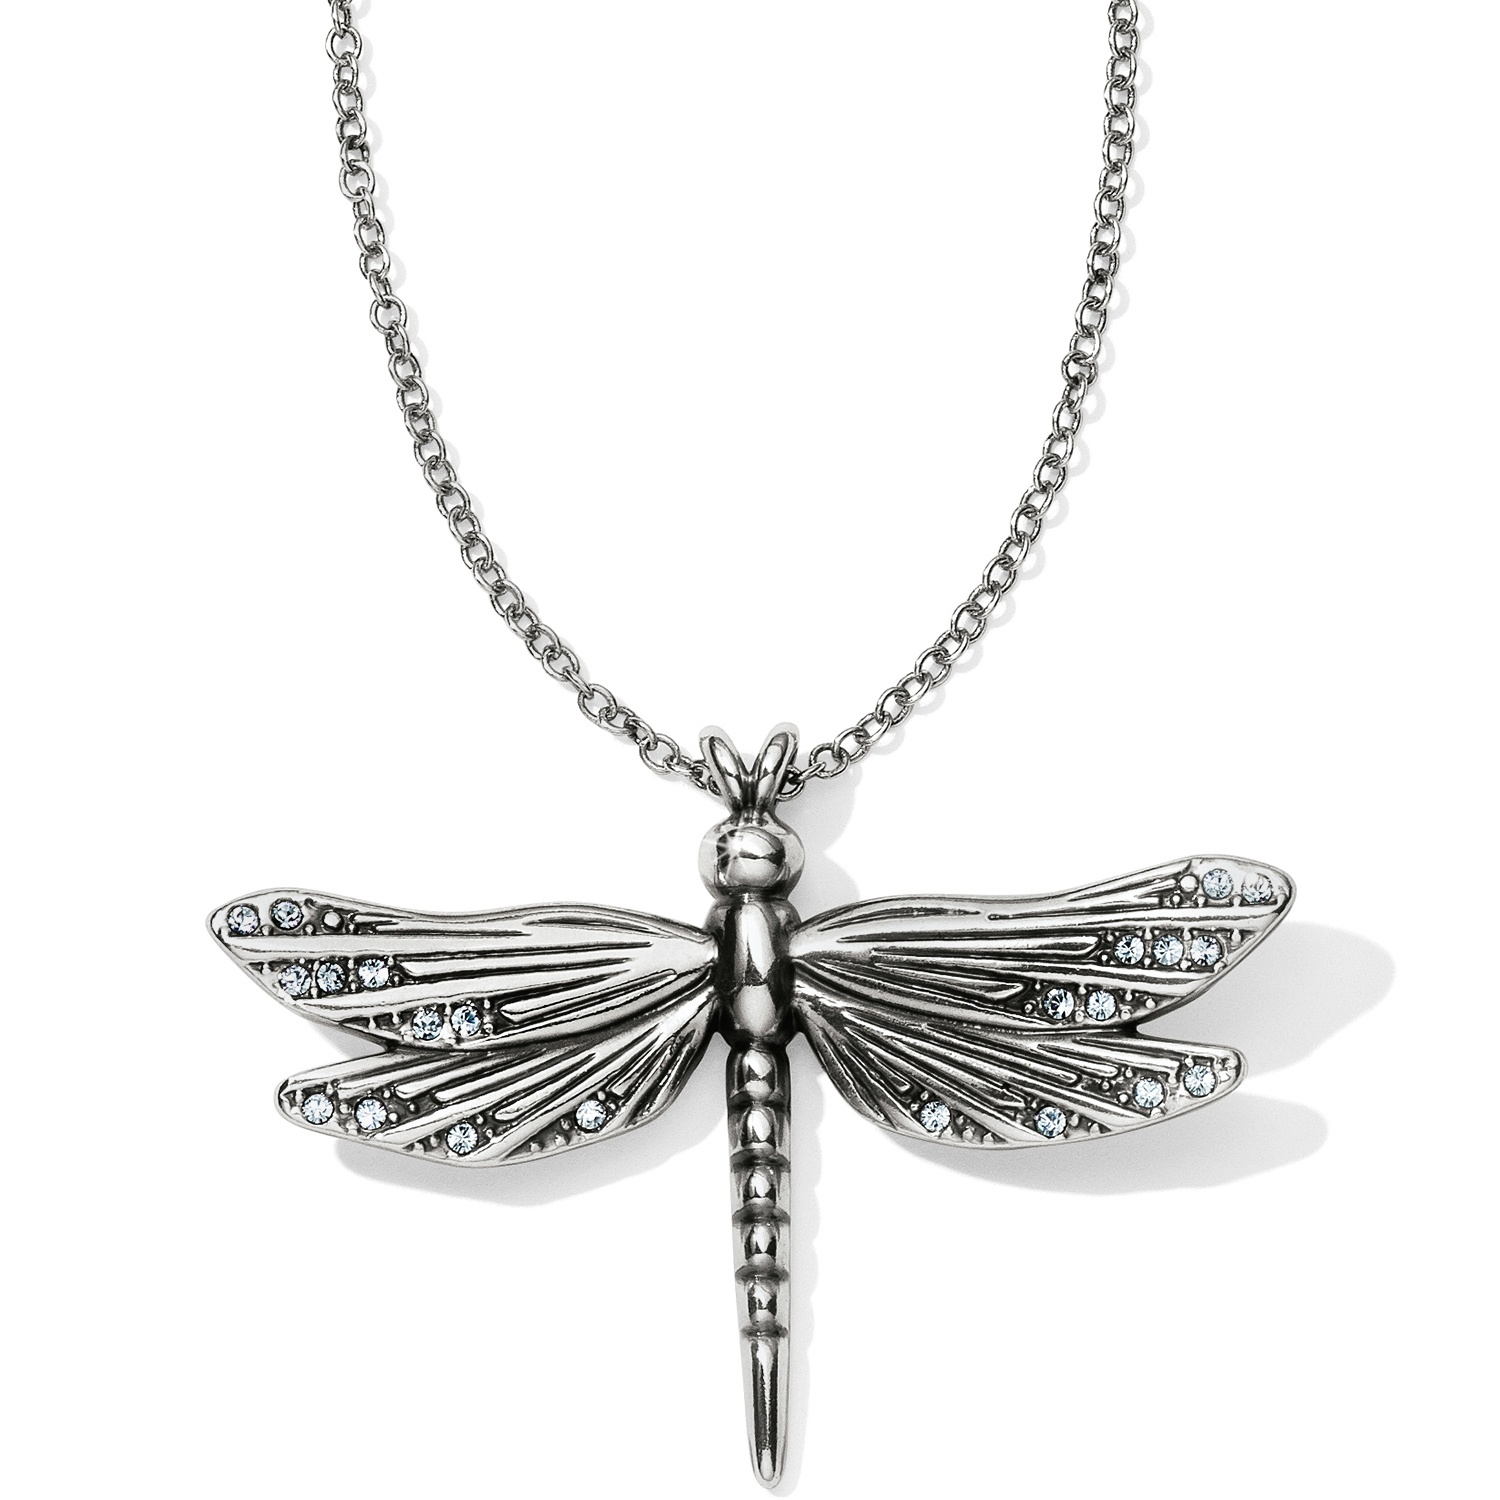 Photo Of Solstice Dragonfly Necklace